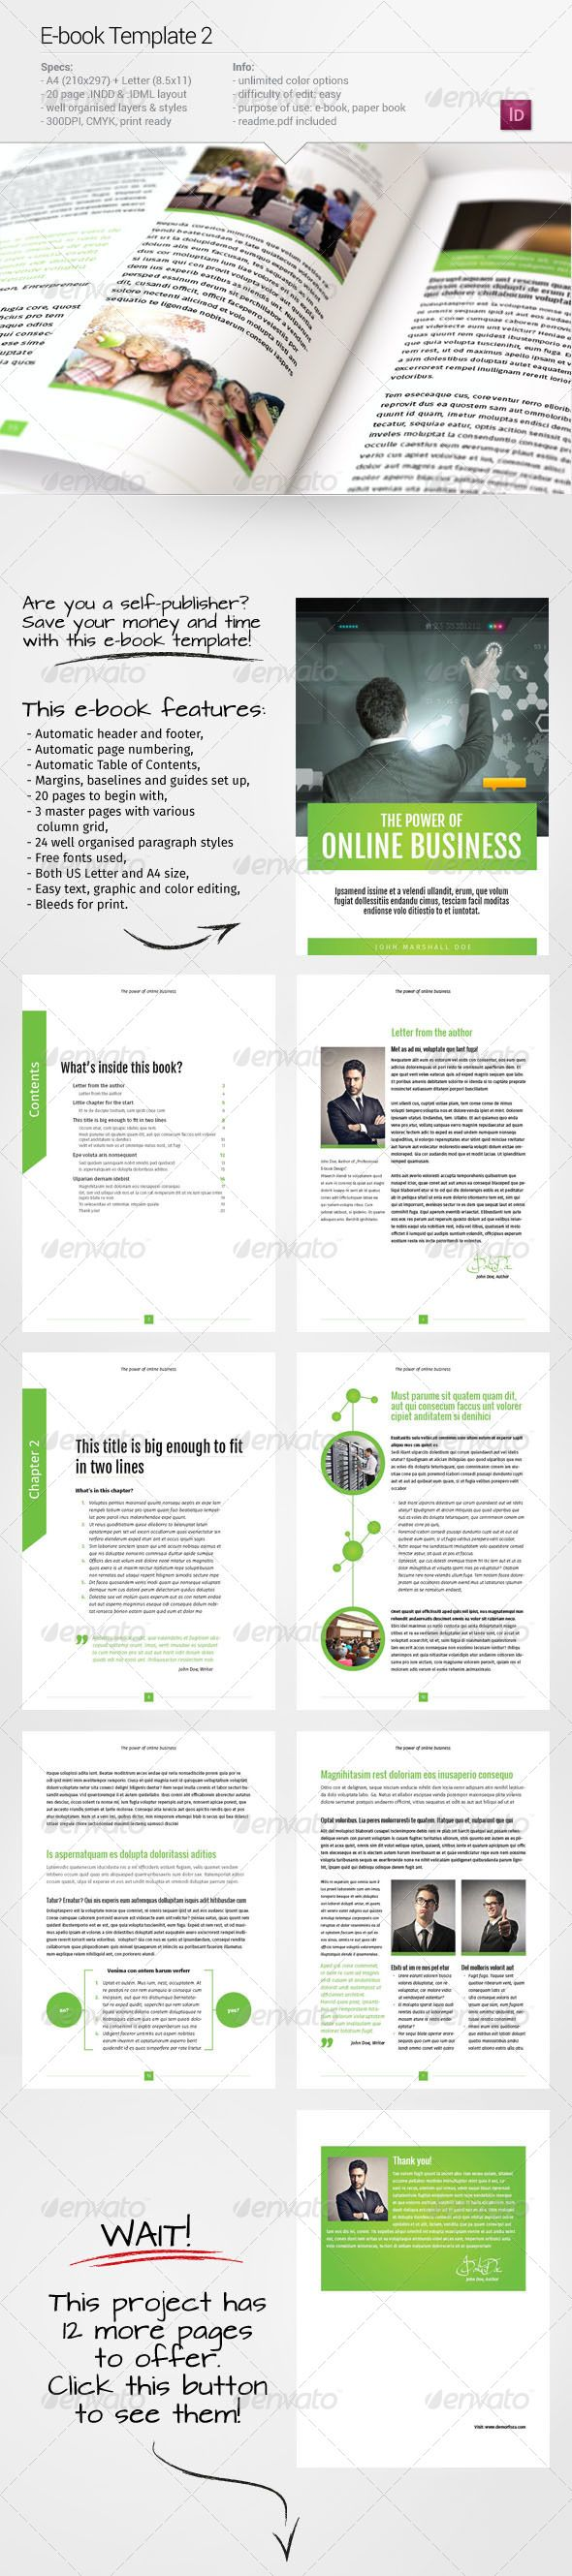 Famous 1 2 3 Nu Opgaver Kapitel Resume Huge 1 Hexagon Template Clean 1 Inch Button Template 1 Year Experience Resume Format For Net Developer Young 10 Minute Resume Builder Soft10 Off Coupon Template 15  Best Premium Ibook Author Templates   DzineFlip